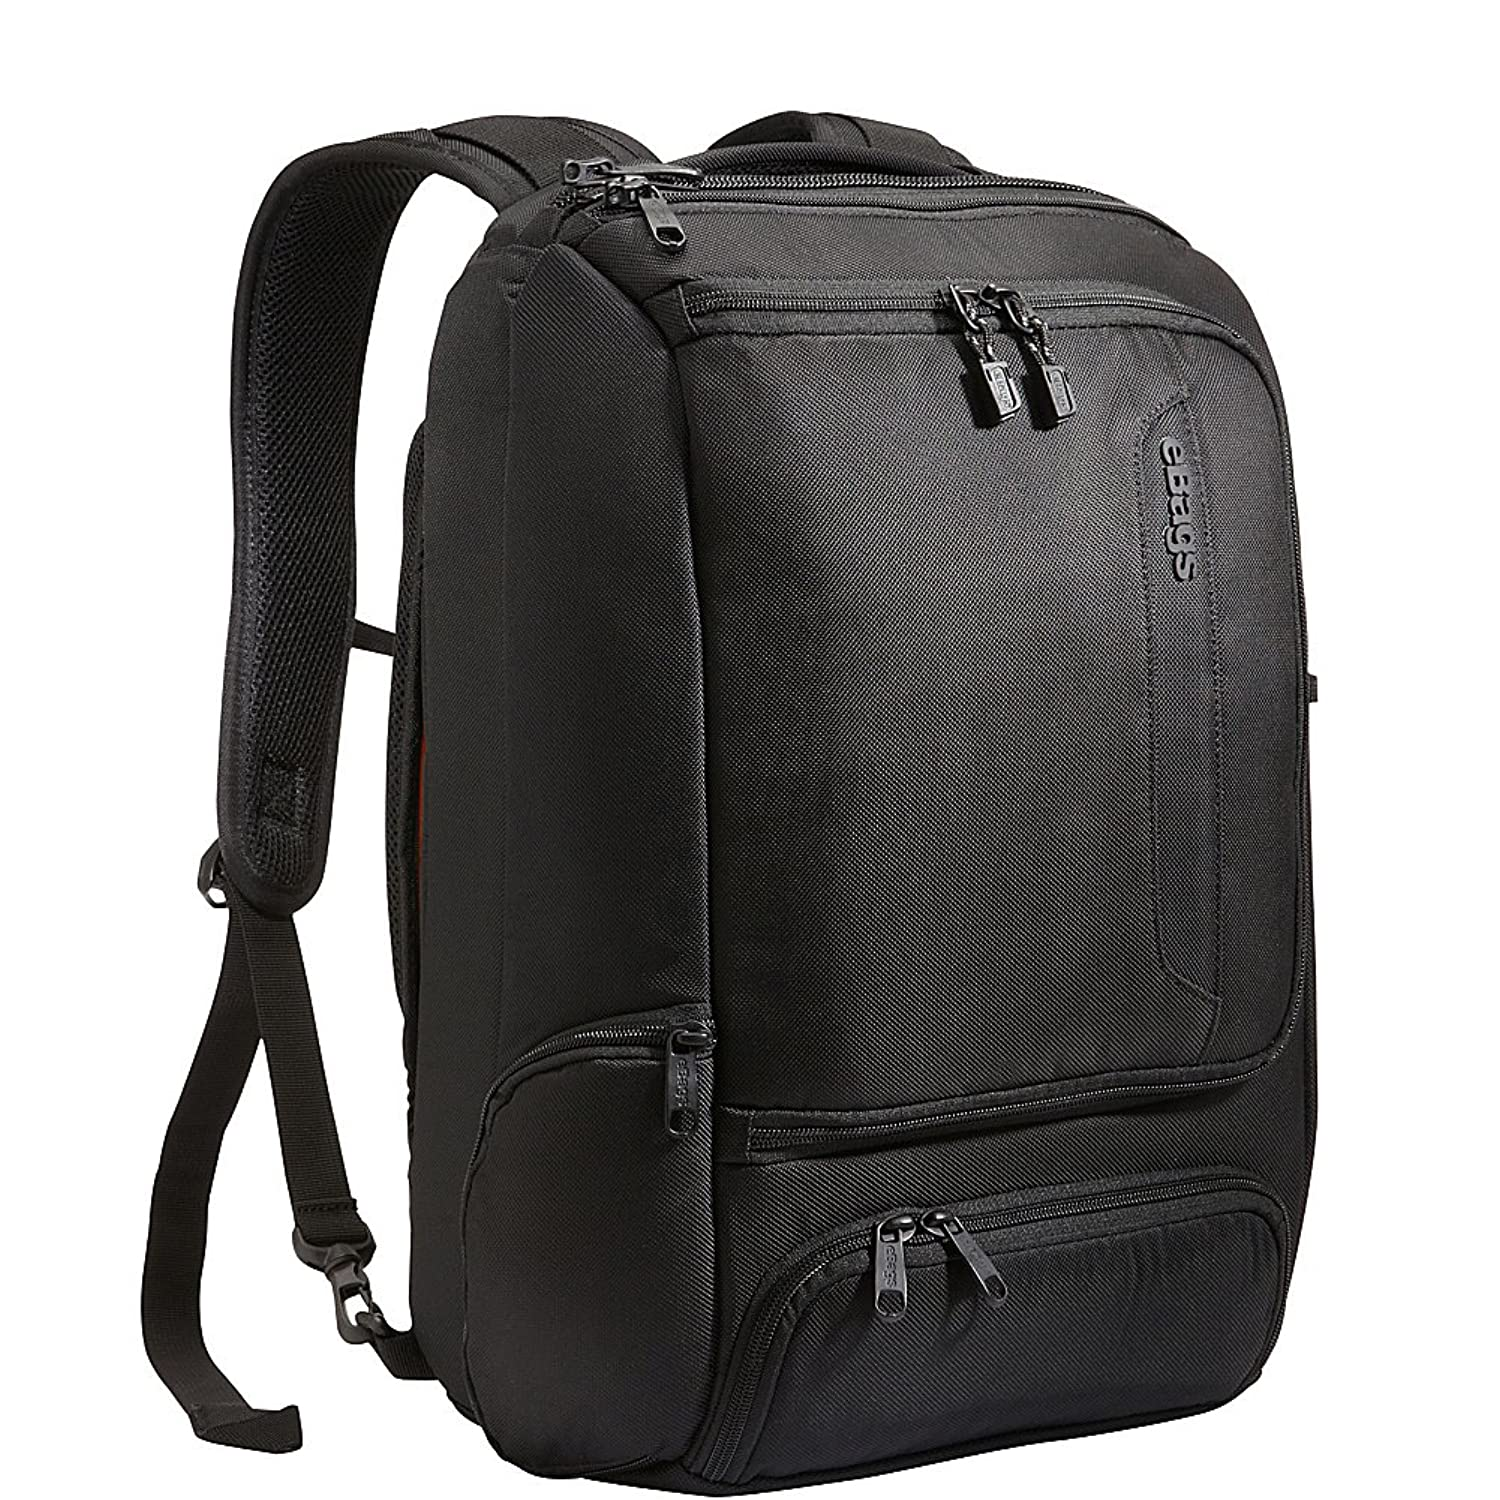 Professional Slim Laptop Backpack for Travel, School   Business - Fits 17